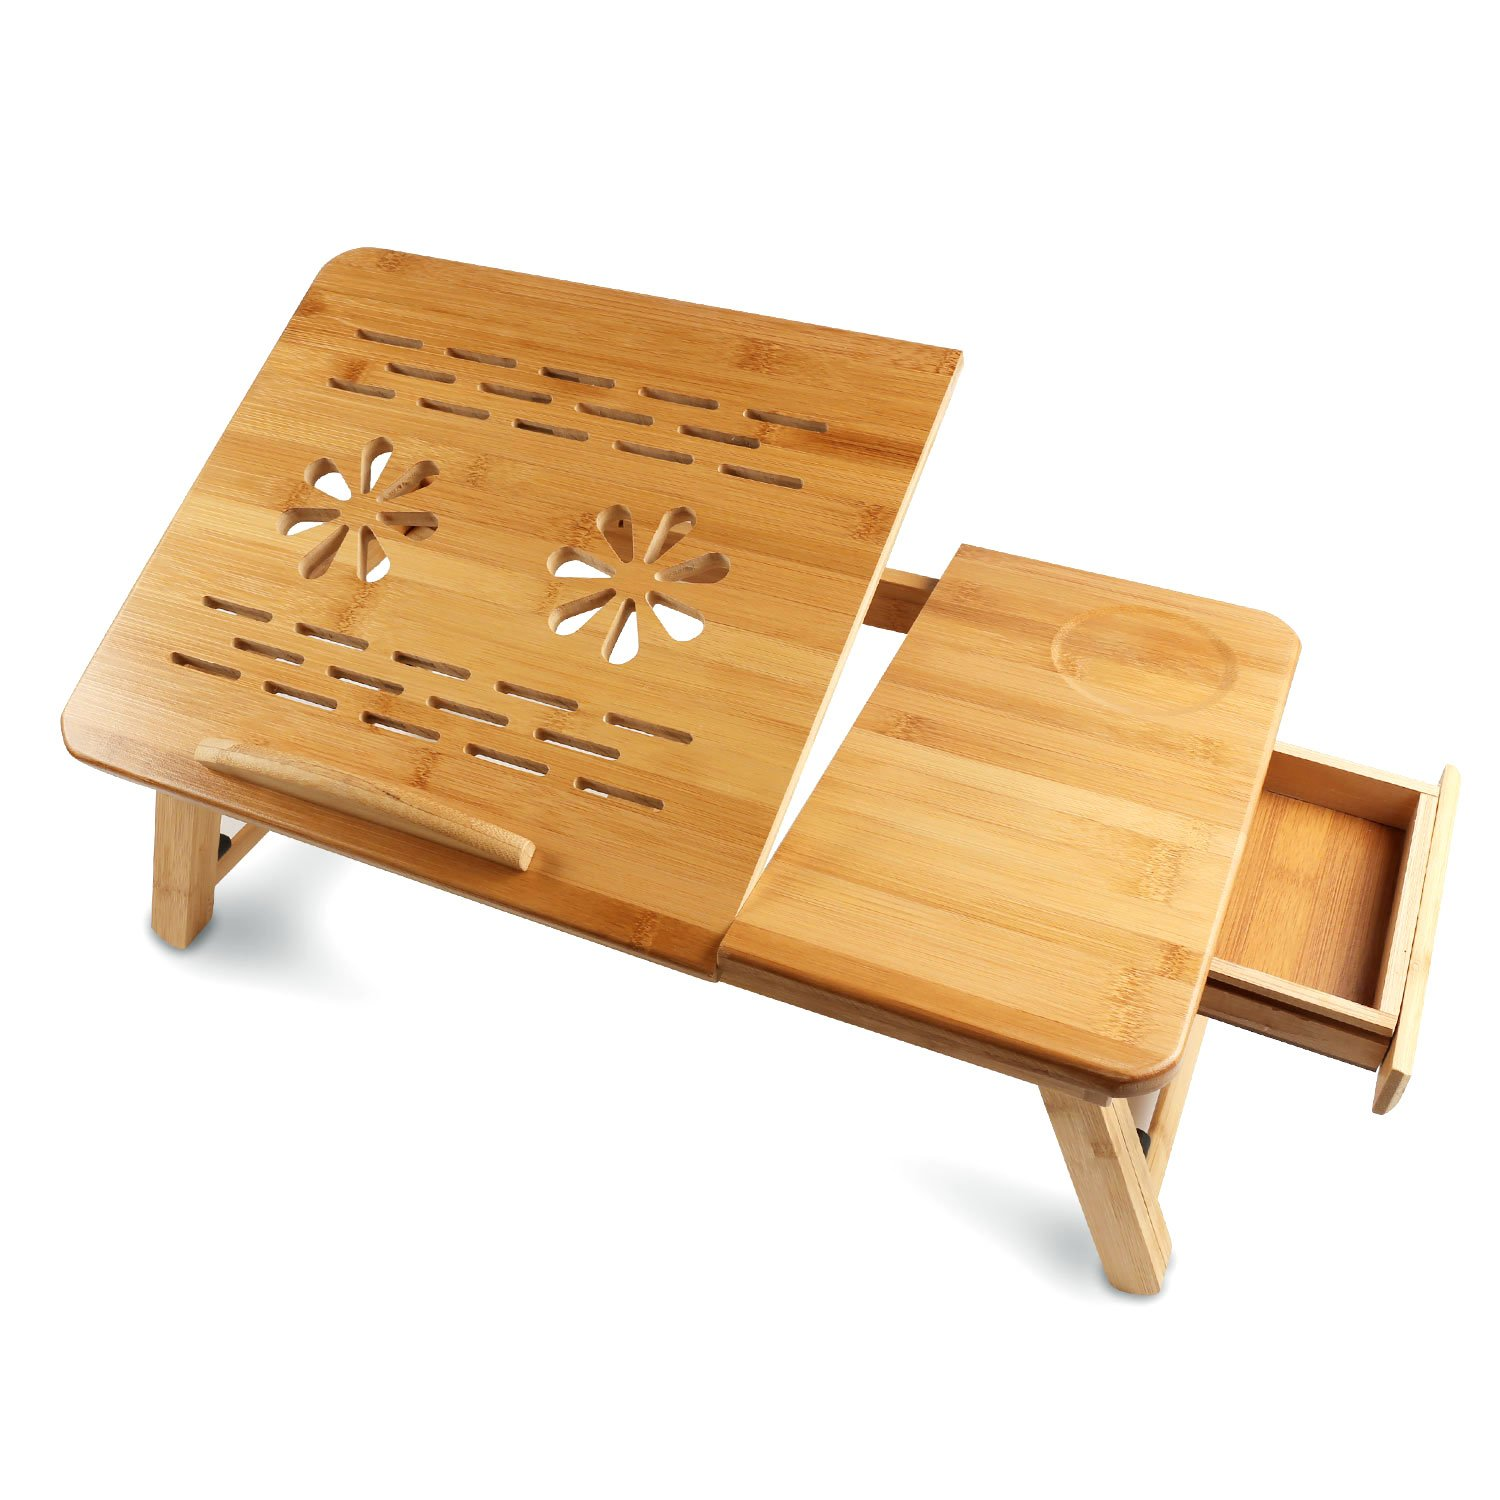 Bamboo Laptop Desk - HENGSHENG Foldable Bed Table Adjustable Breakfast Serving Bed Tray with Tilting Top Drawer (Natural)